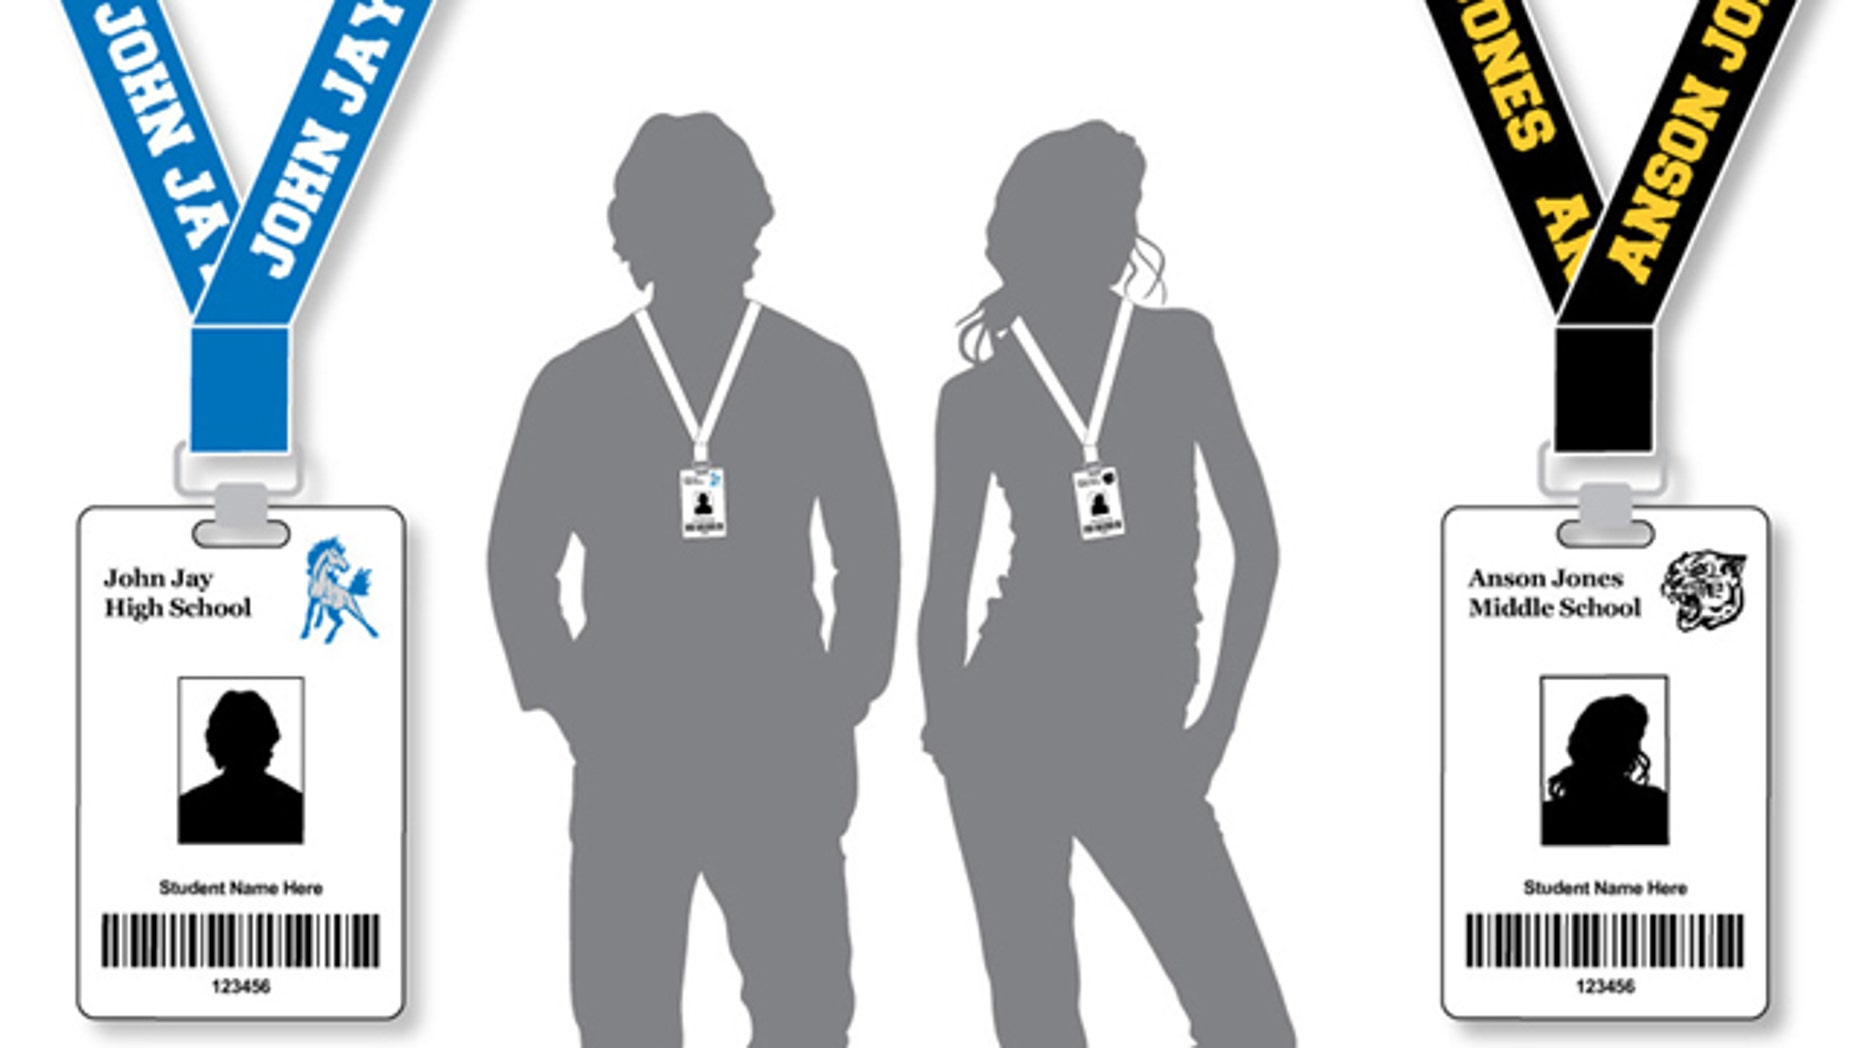 The card, which will be worn on a lanyard around each student's neck, will transmit location information via microchip to electronic readers throughout the campuses, NISD spokesman Pascual Gonzalez told FoxNews.com. (Courtesy: NISD)